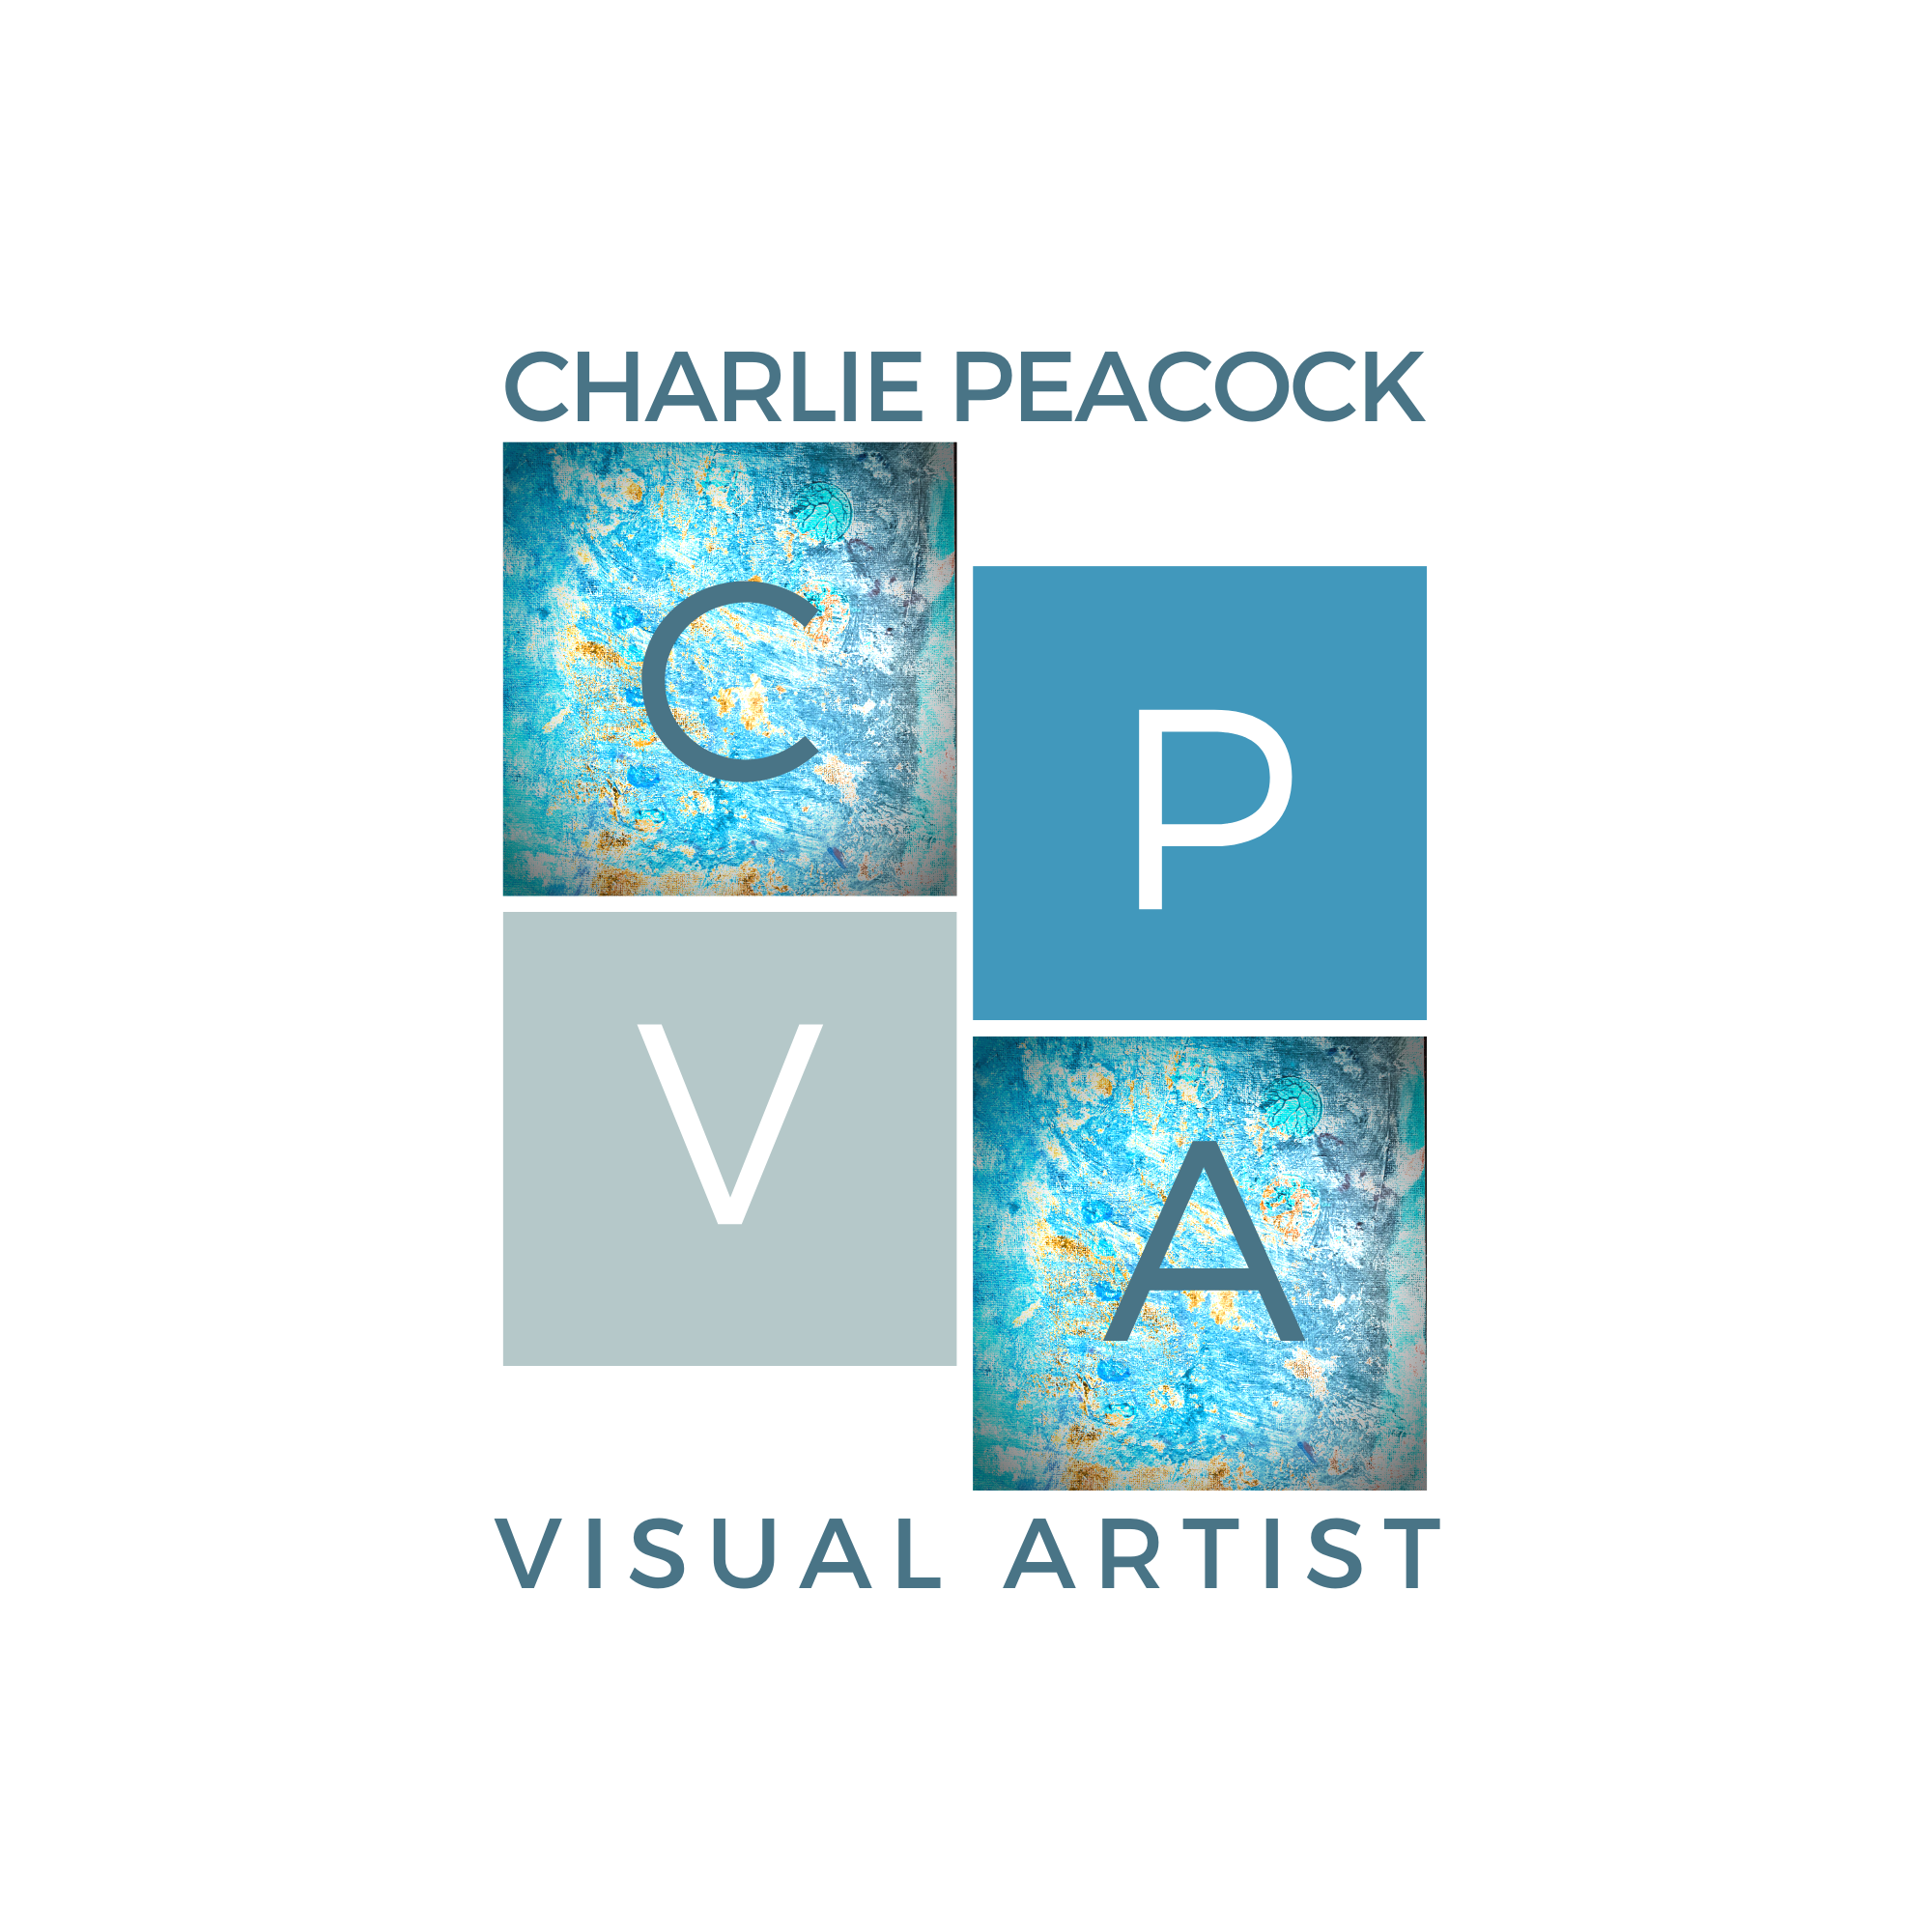 Charlie Peacock Visual Artist